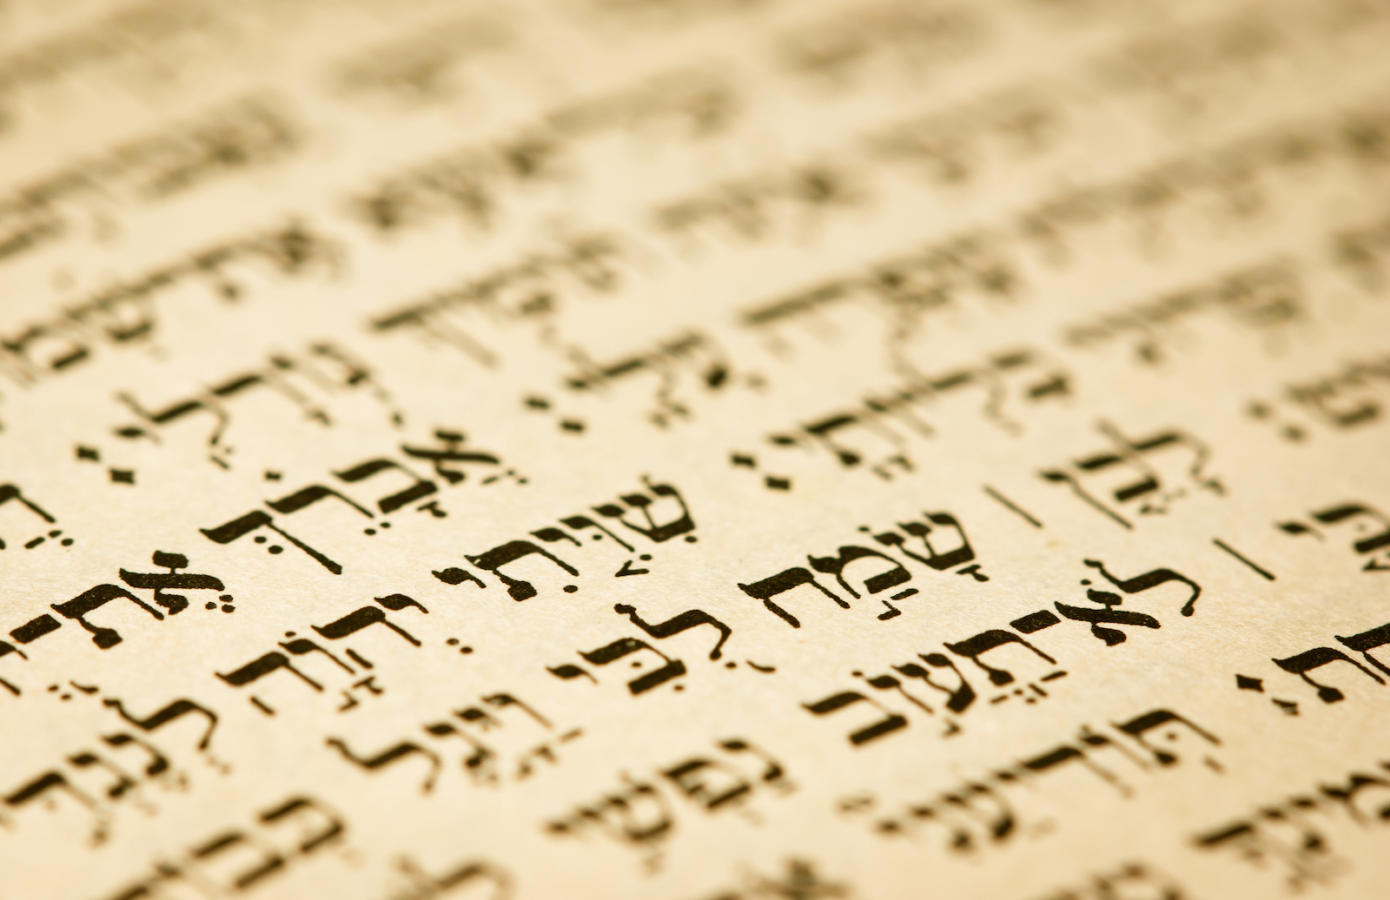 Hebrew letters are beautifully written.